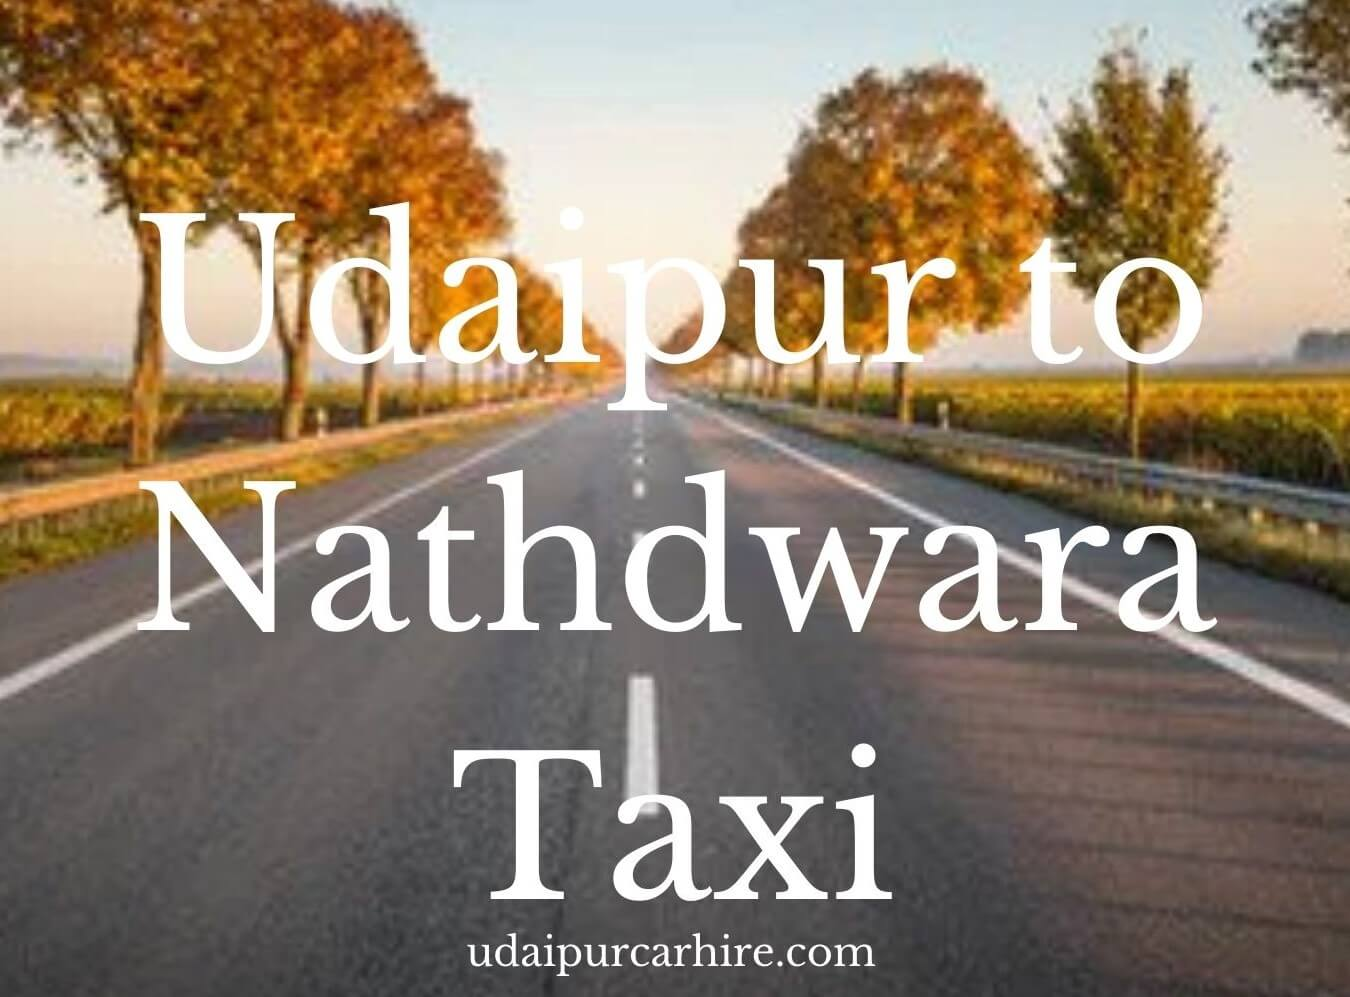 Udaipur to nathdwar taxi